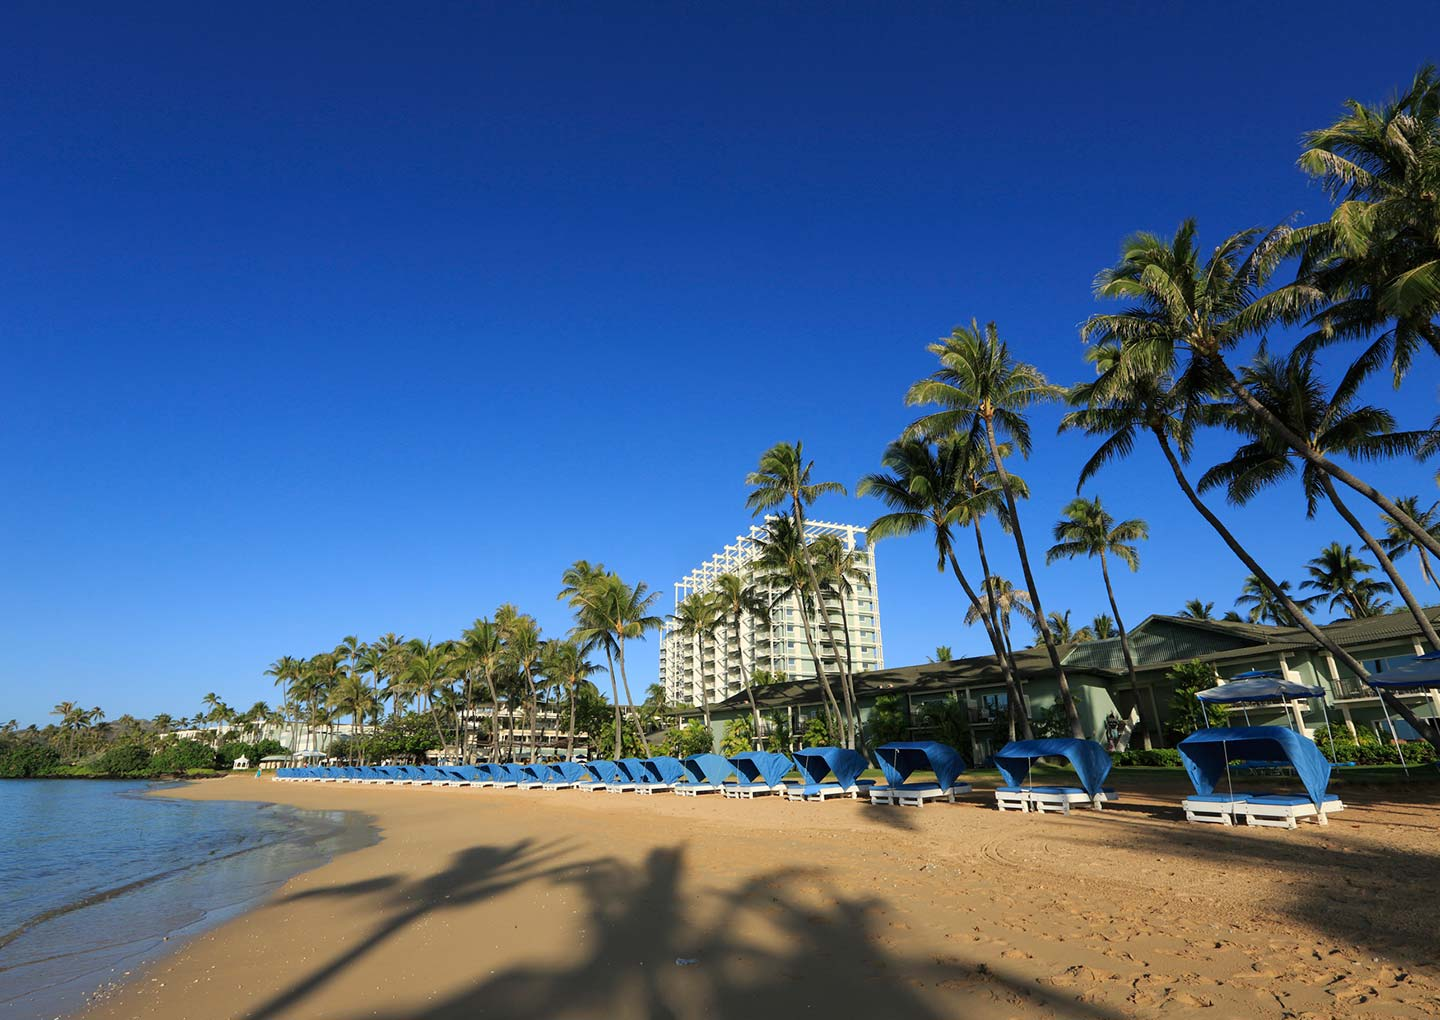 Luxury The Kahala Hotel And Resort In Honolulu For $306